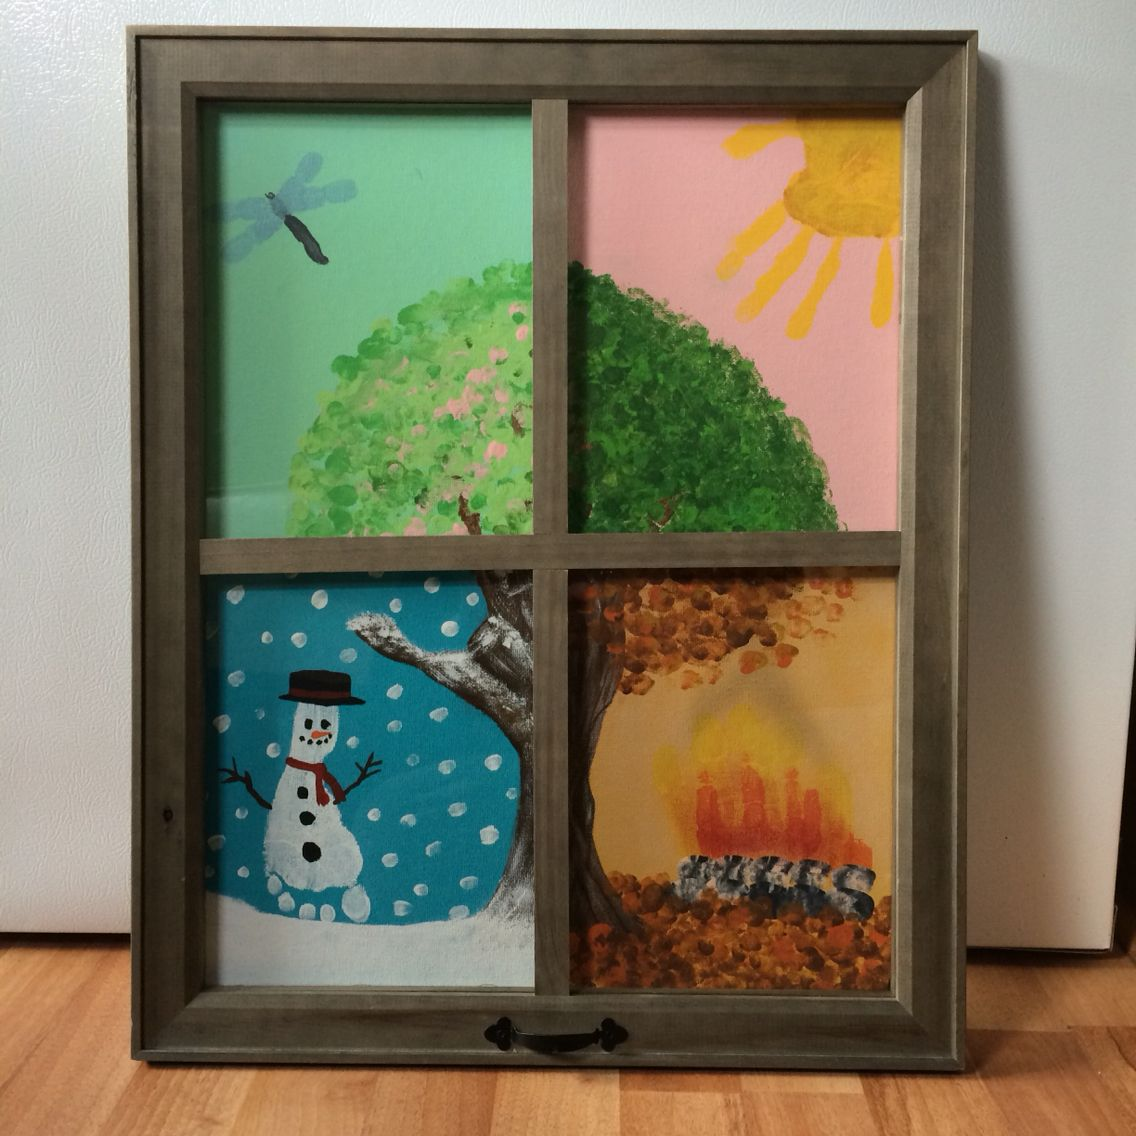 family tree finger painting mothers day gift walmart picture frame 4 8x10 canvases